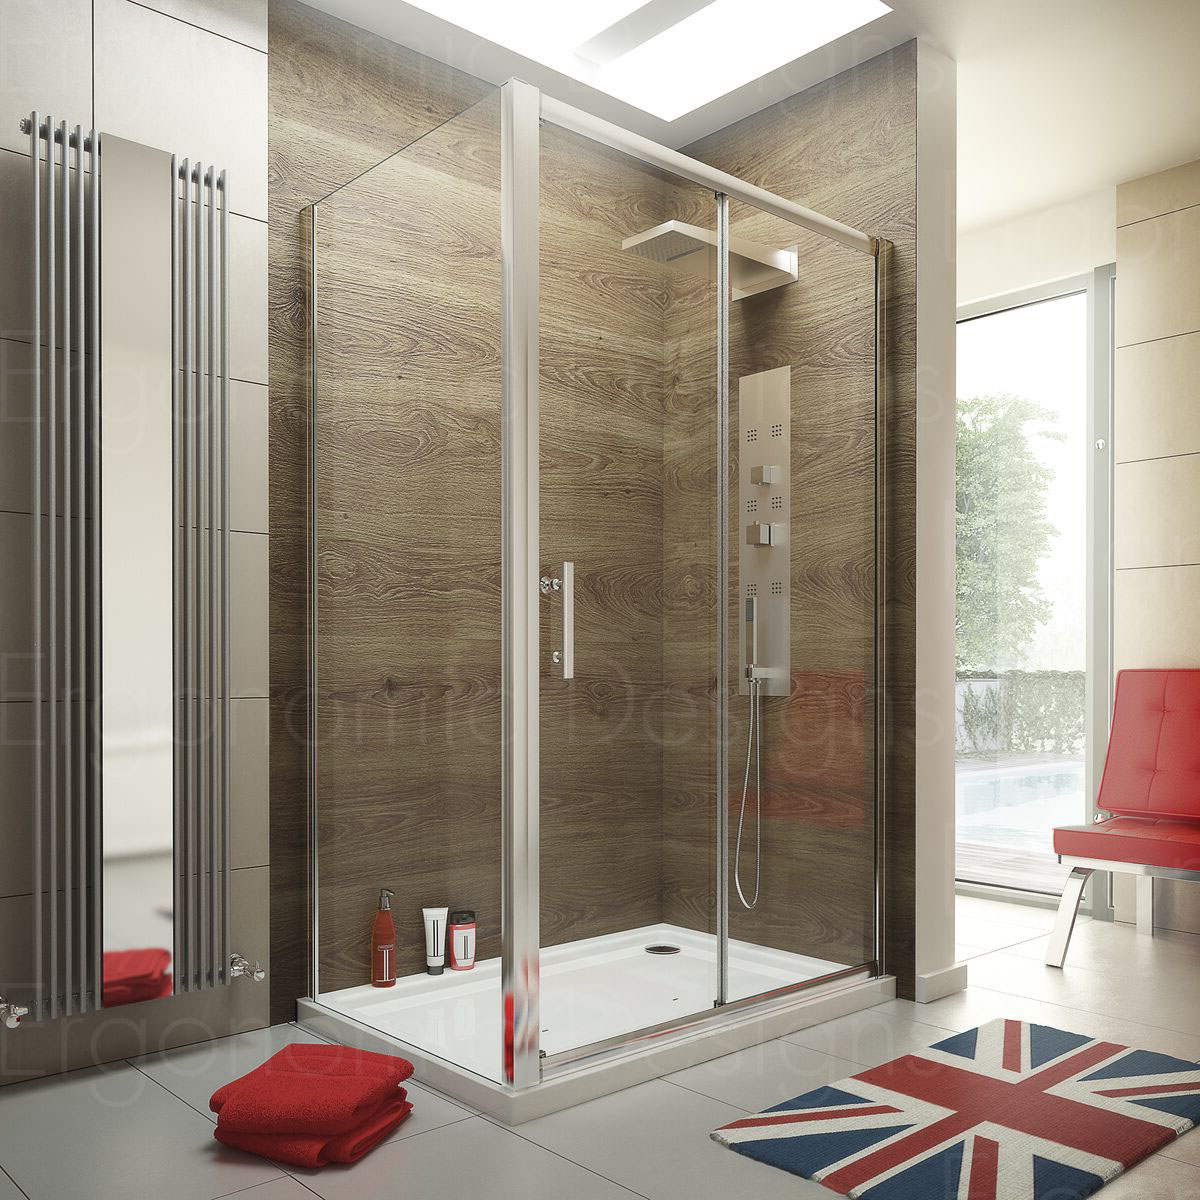 1200 x 700 Sliding Door Shower Enclosure Glass Cubicle with Stone ...